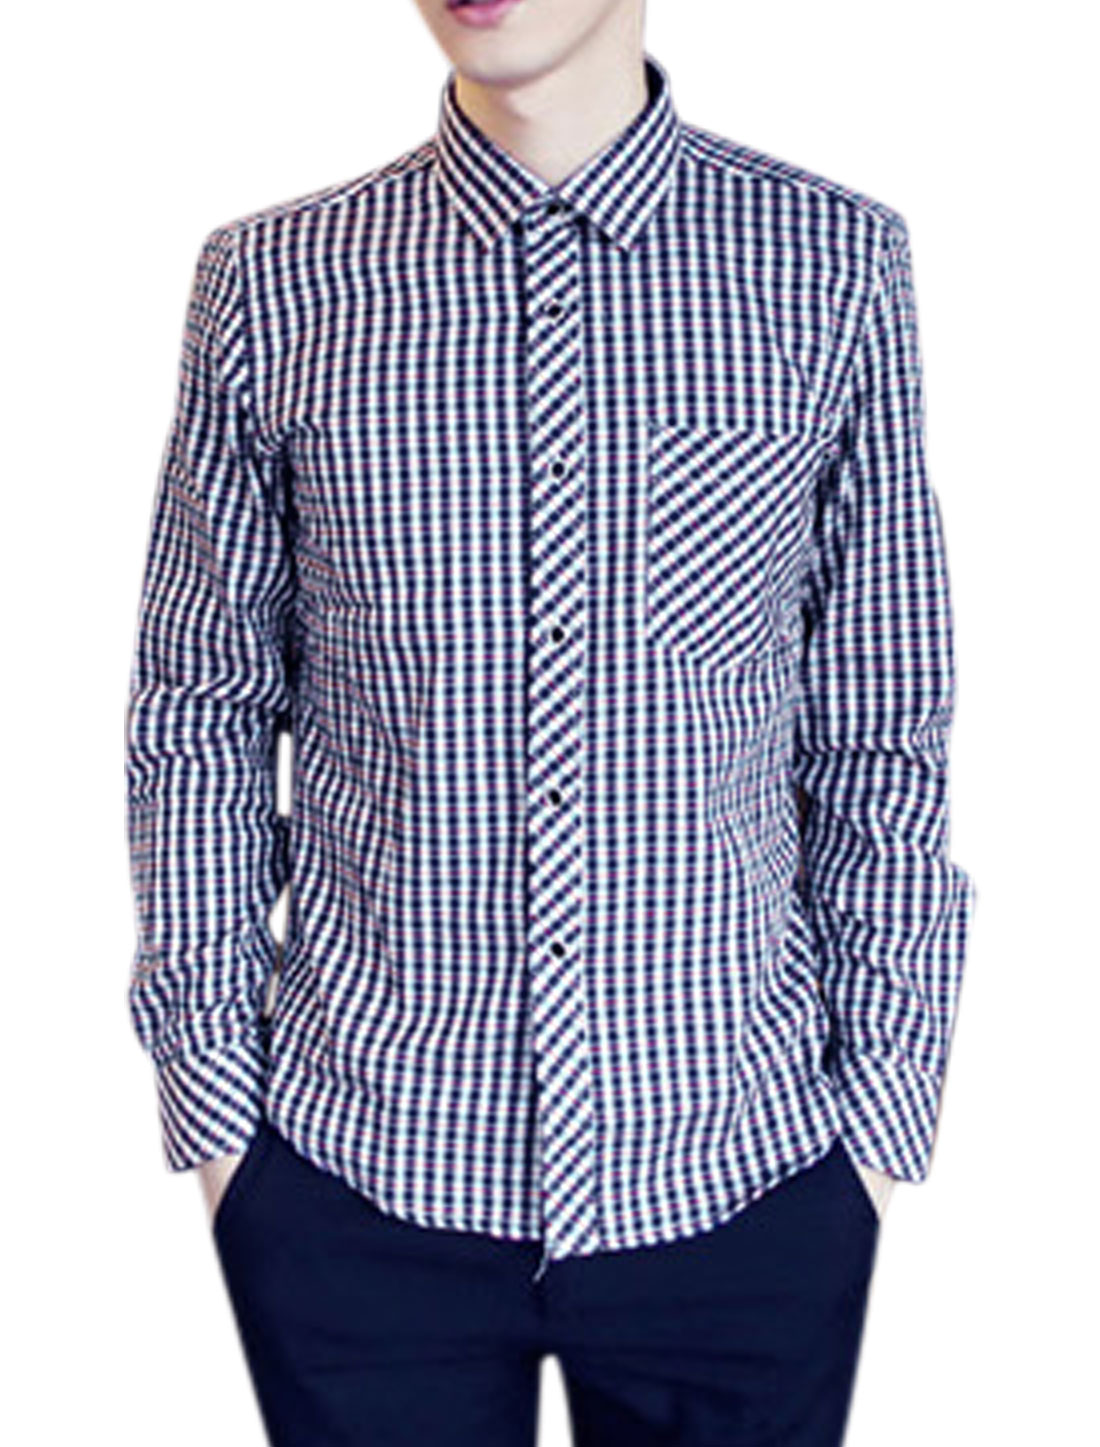 All Over Plaids Print Chest Patch Pocket Casual Shirt for Men Red Navy Blue M